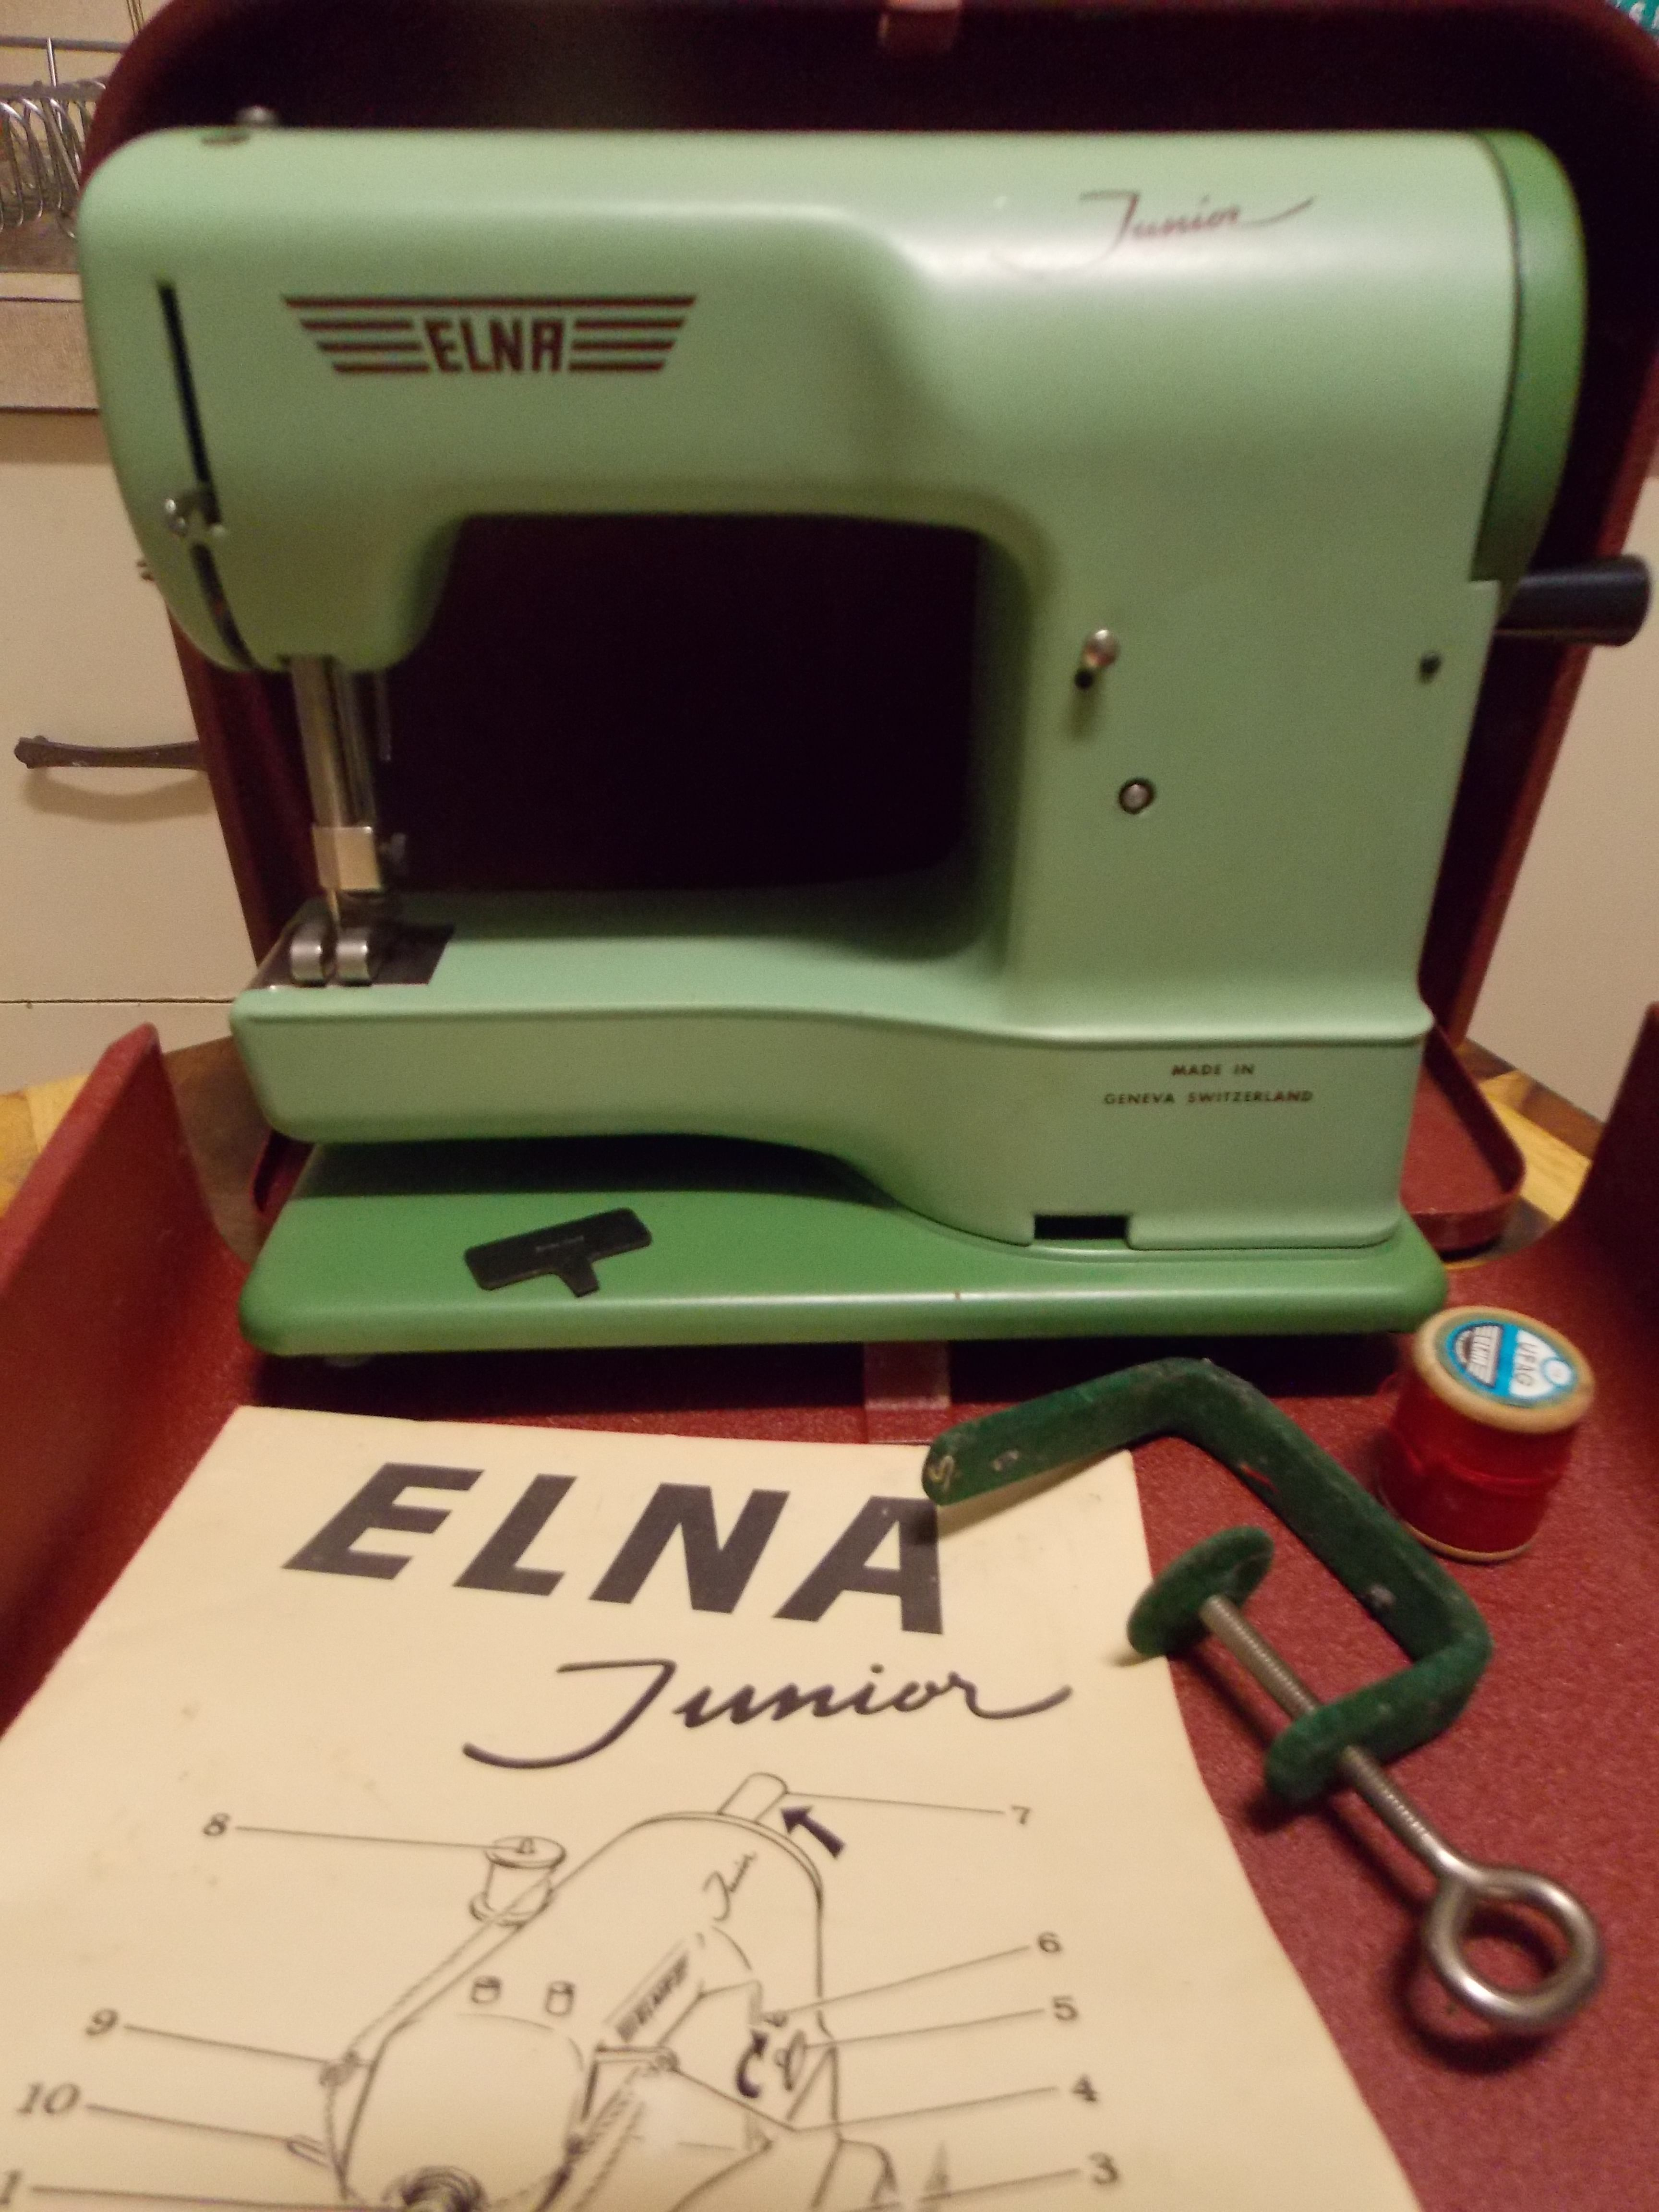 our elna junior toy sewing machine complete with manual clamp and rh pinterest com Elna TSP Sewing Machine Manual Elnita Sewing Machine Manual